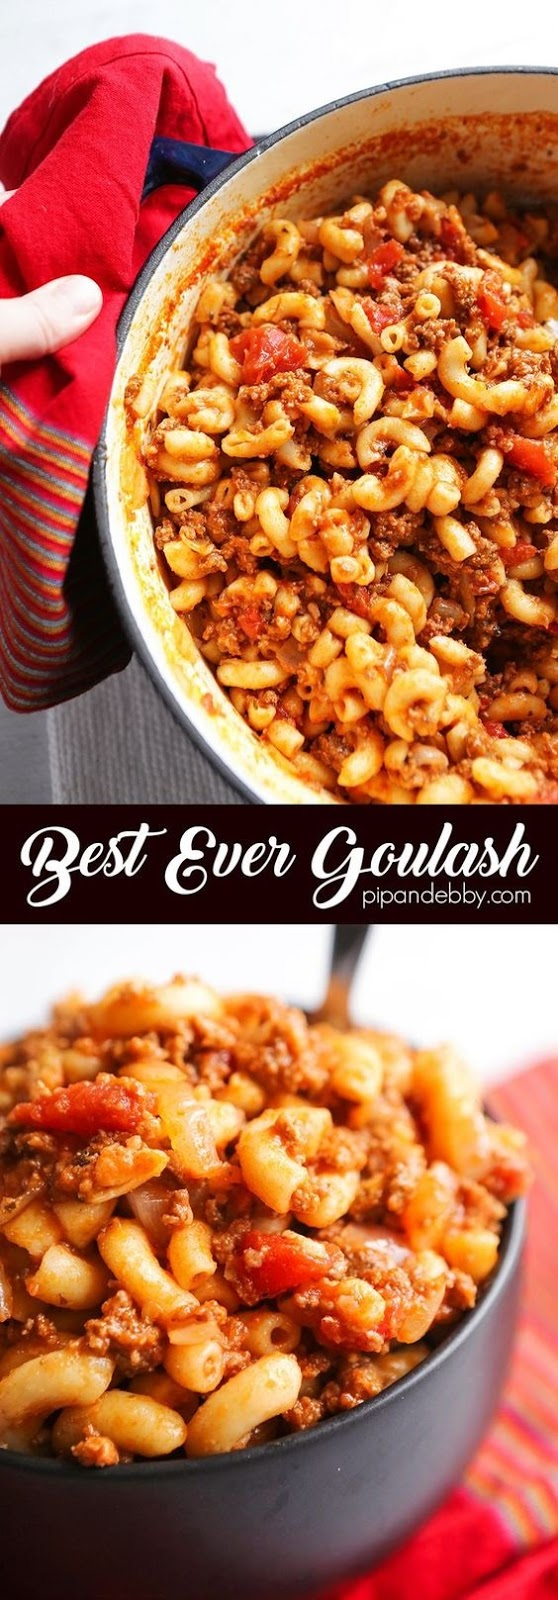 Best American Goulash